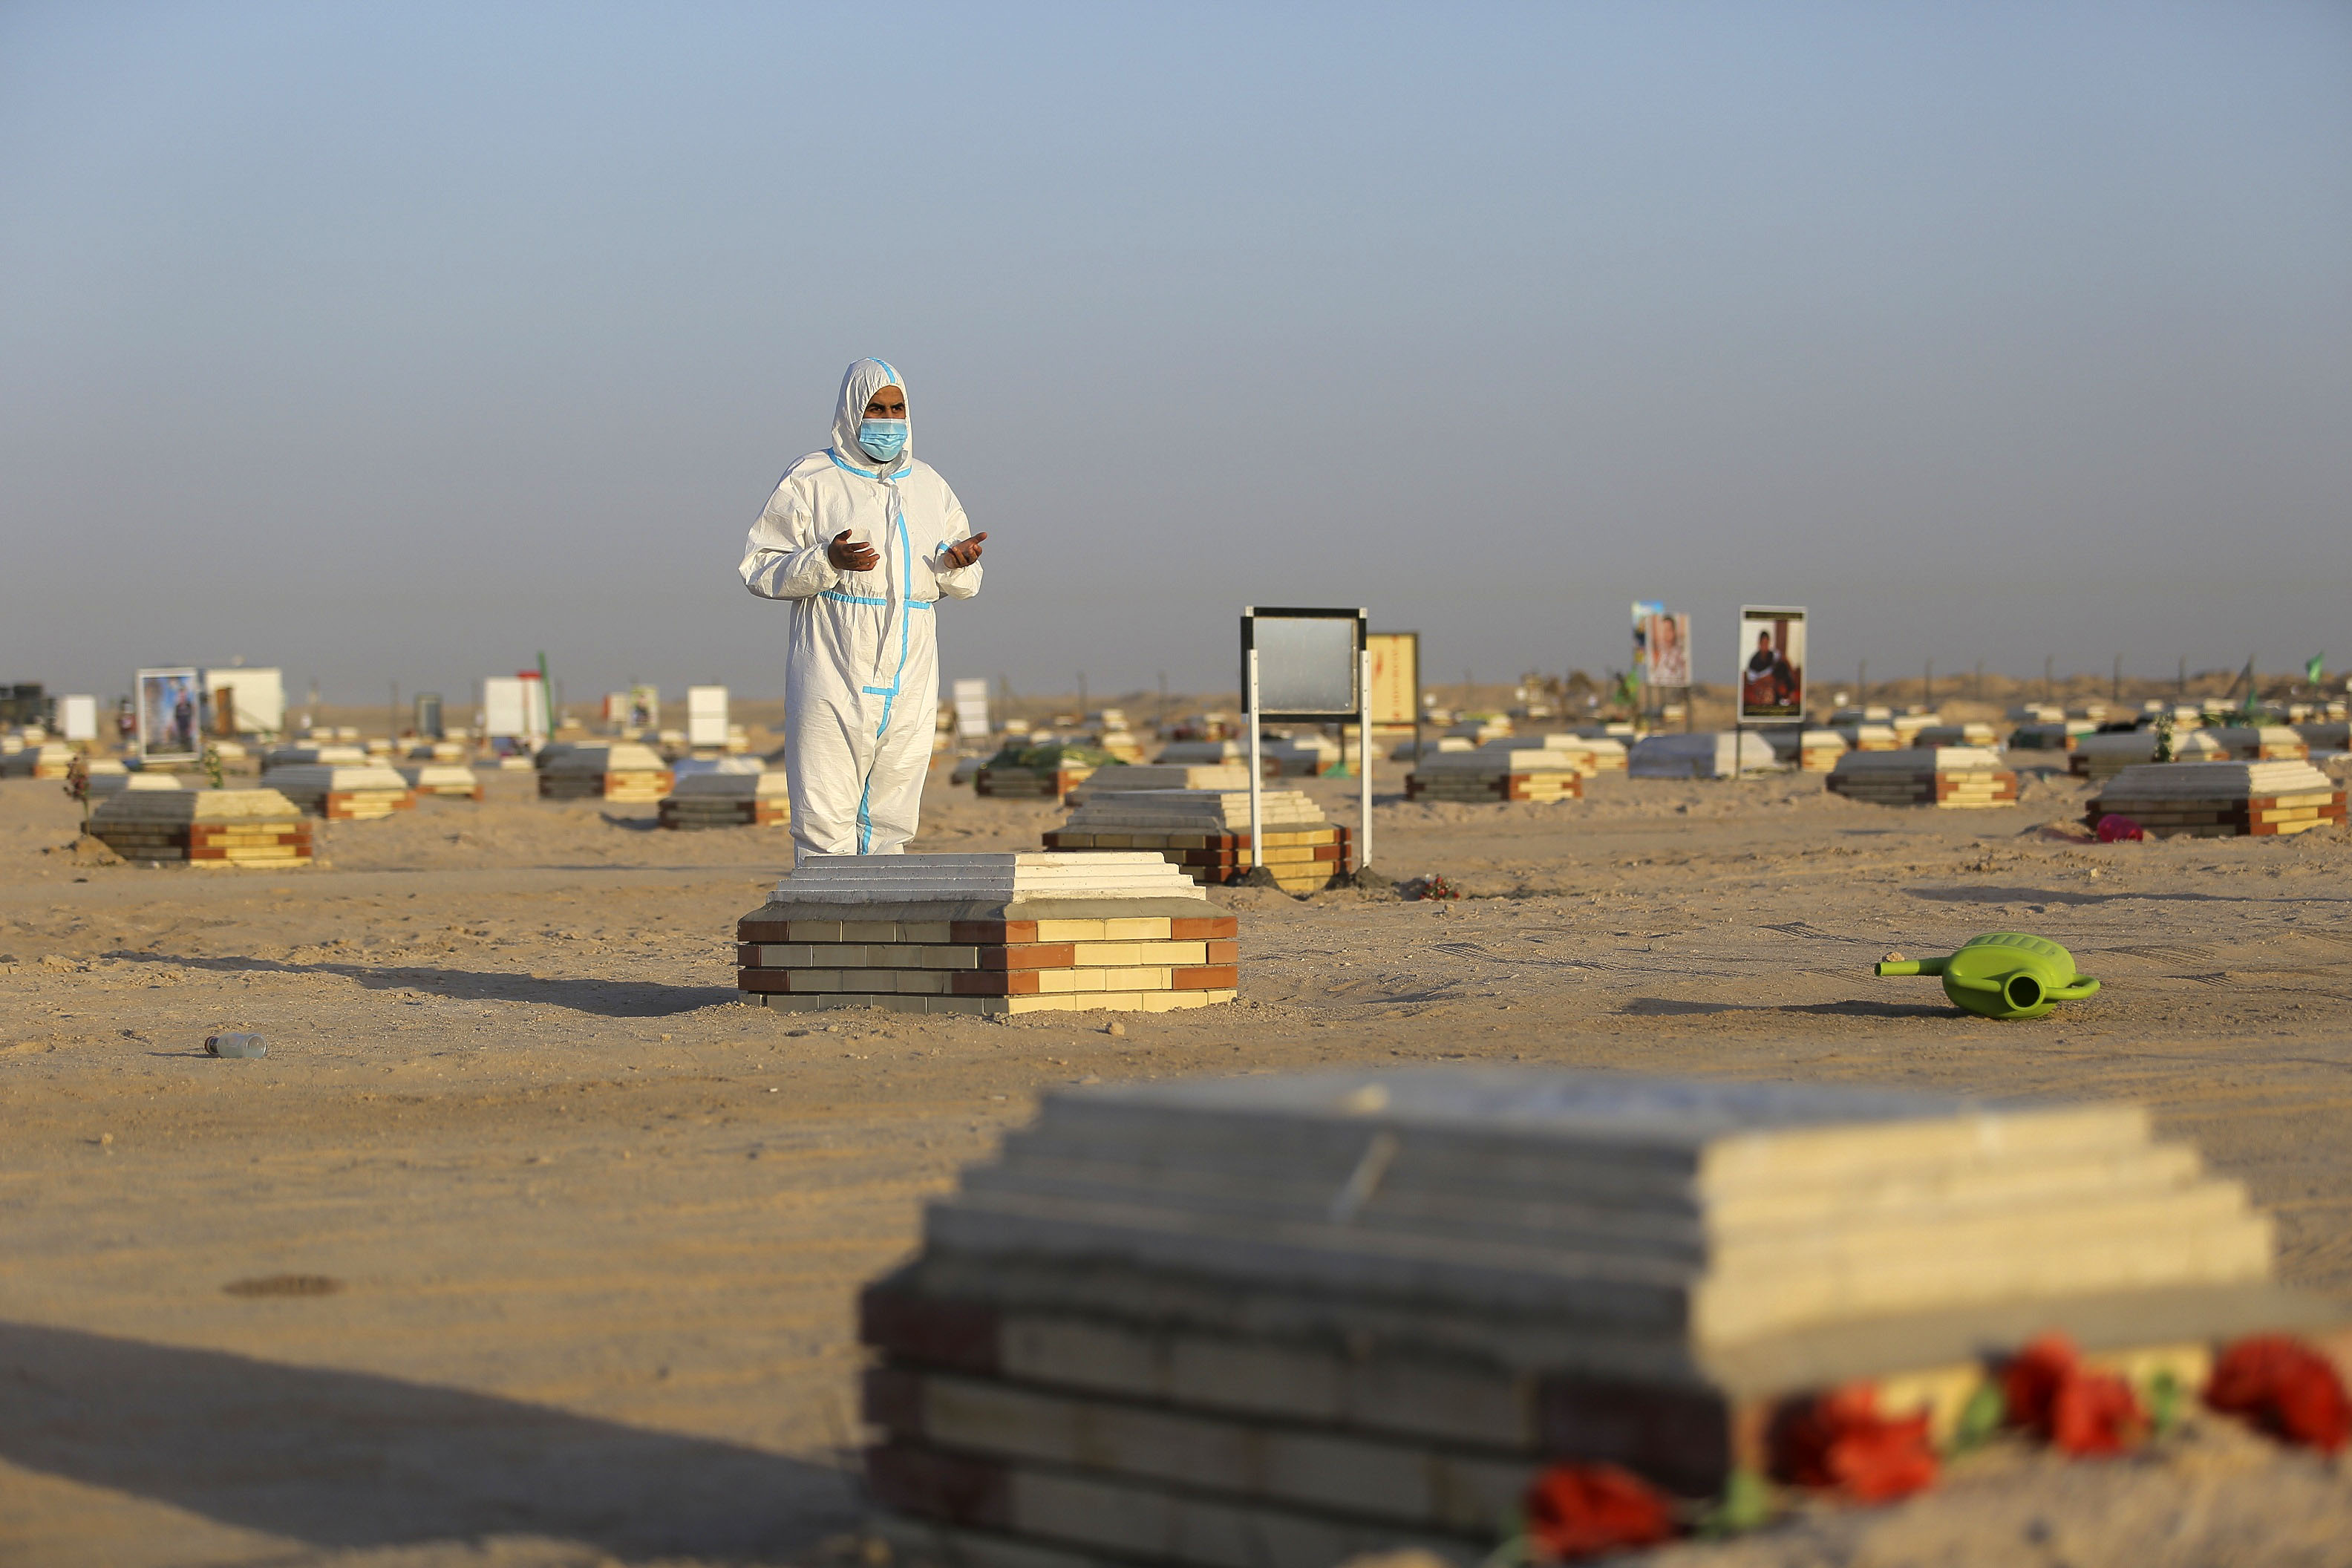 A person prays by the grave of someone said to have died from Covid-19 at a cemetery near Najaf, Iraq, on July 20.